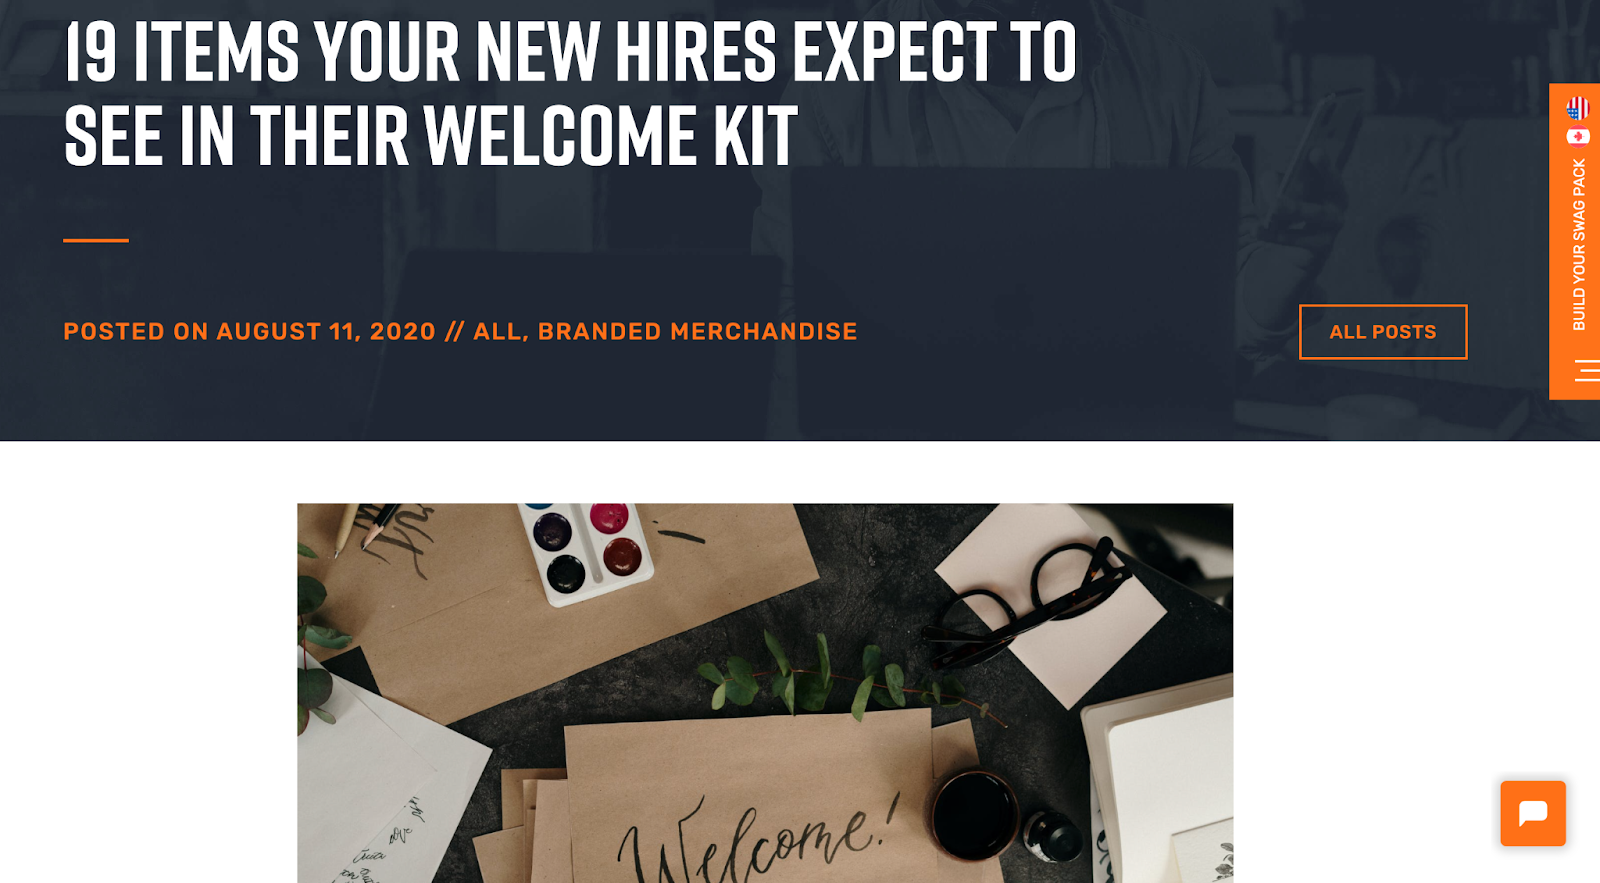 PRG Store blog post on welcome kits.